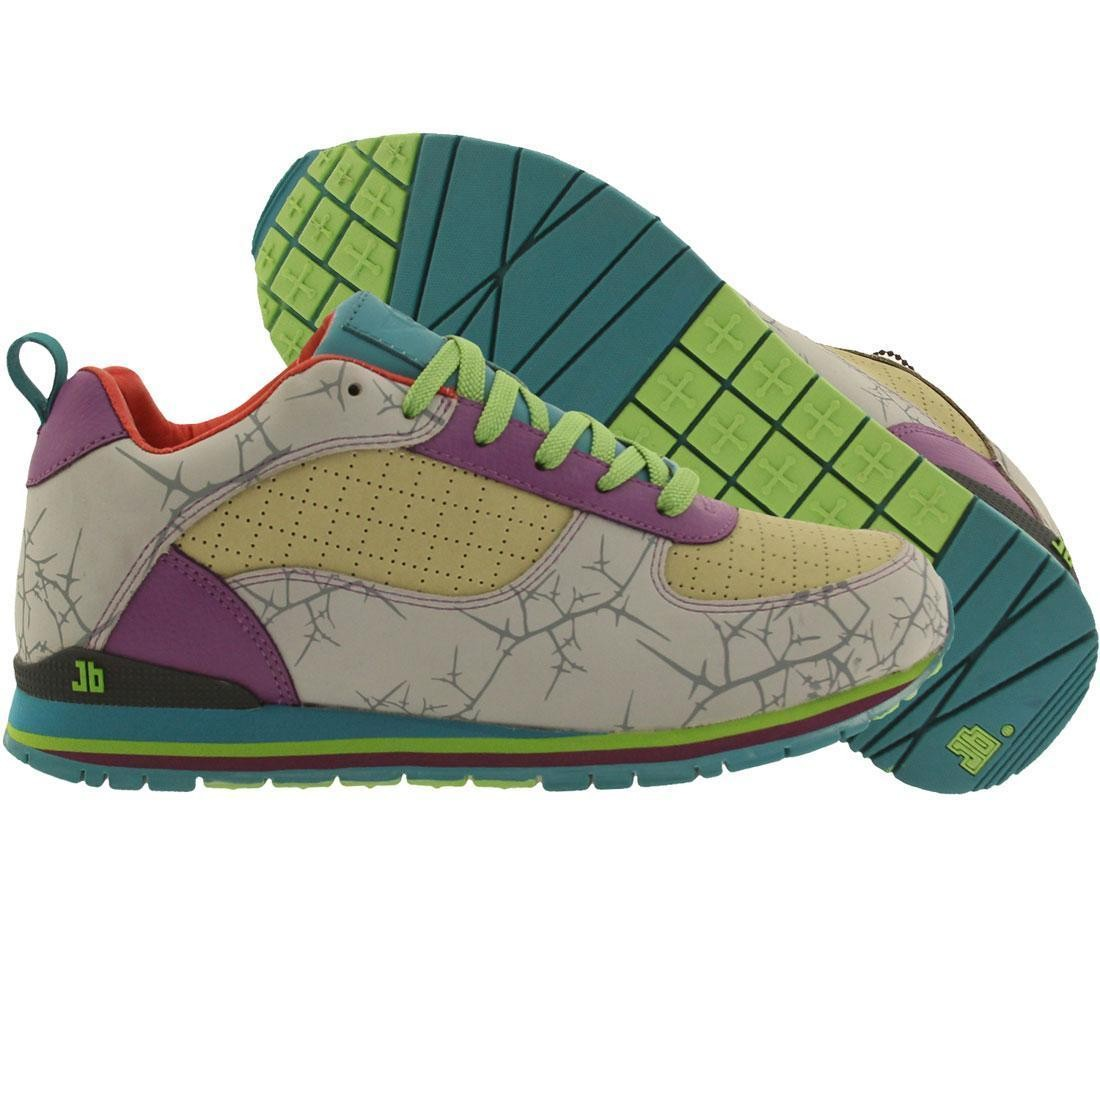 JB Classics Sub-40 Thorns - Otwah (cement / khaki / purple)